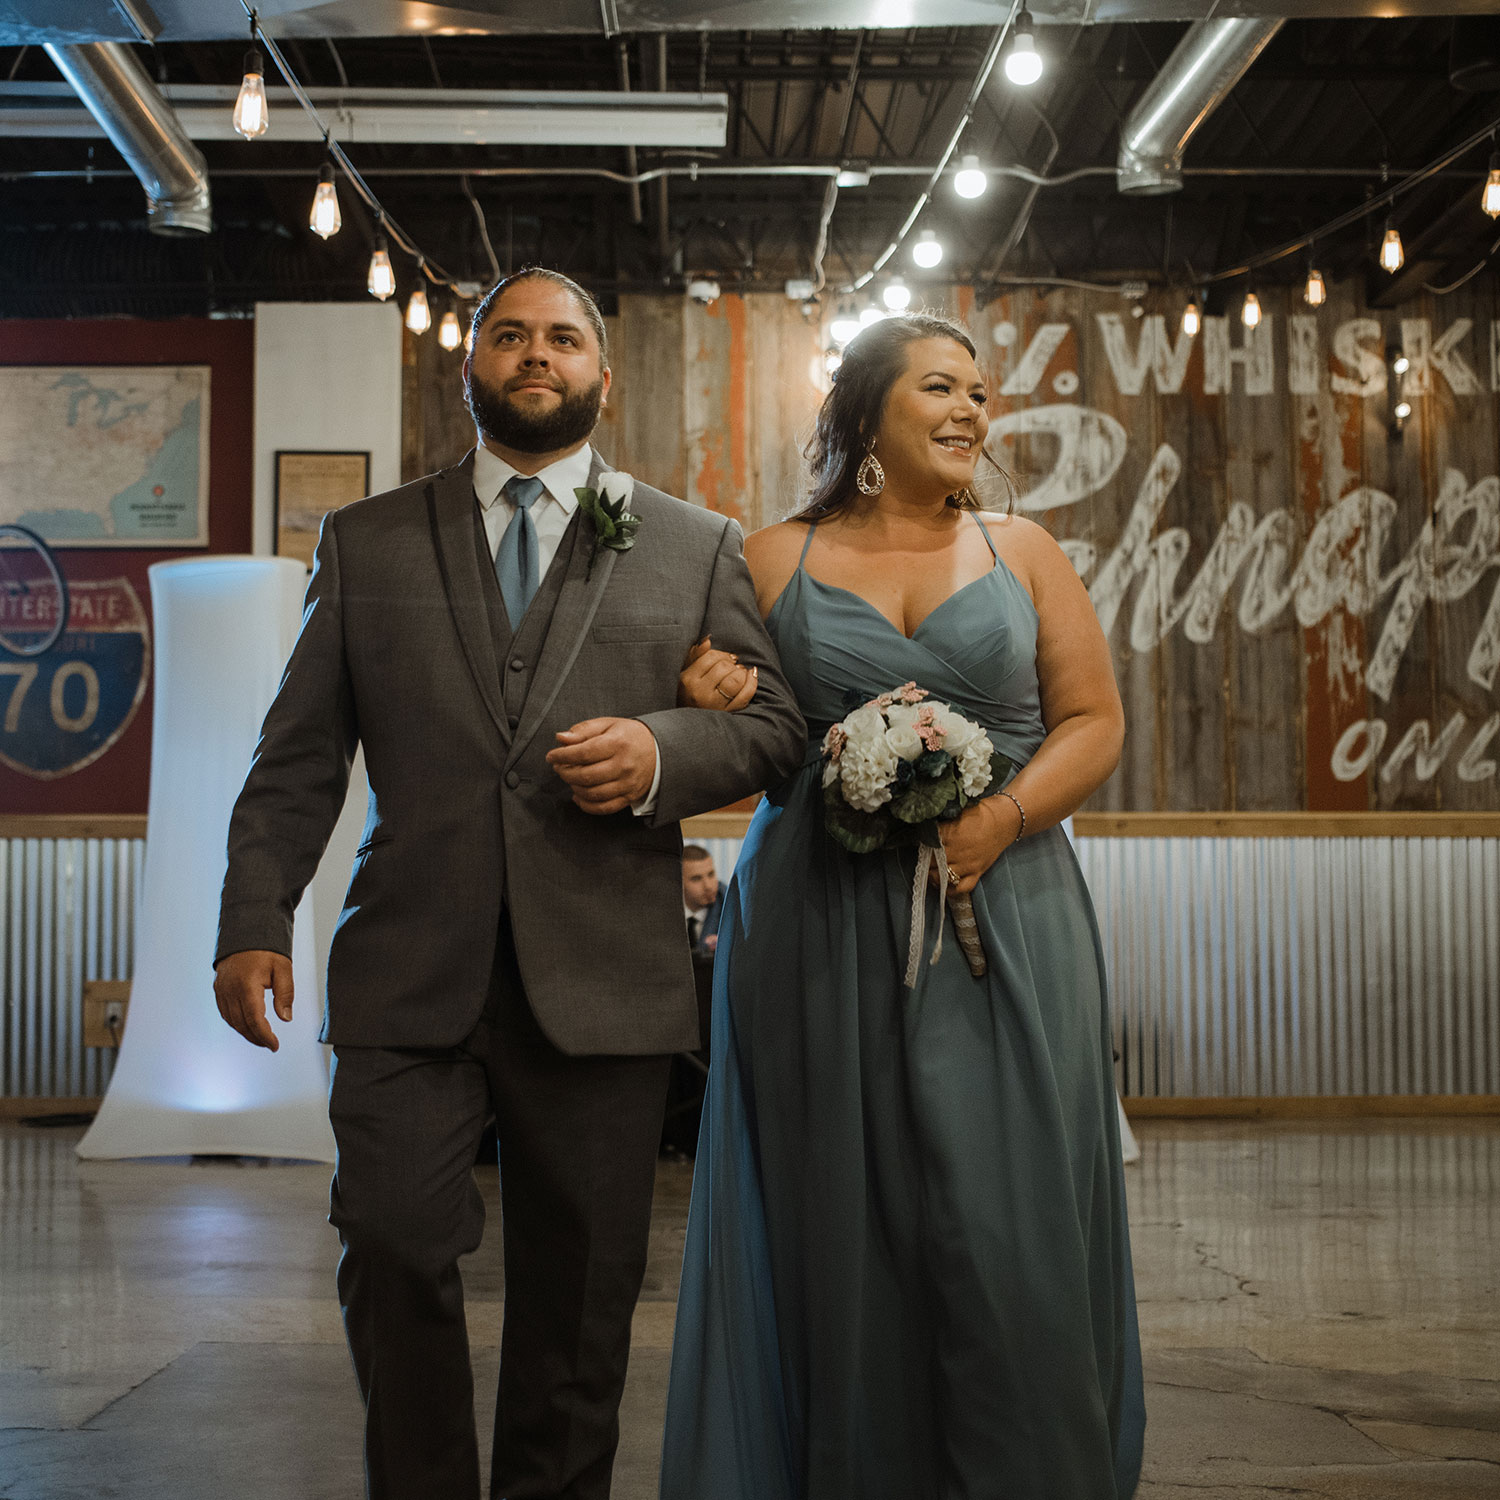 bridesmaid-and-groomsmen-first-walking-down-aisle-decades-event-center-building-desmoines-iowa-raelyn-ramey-photography..jpg